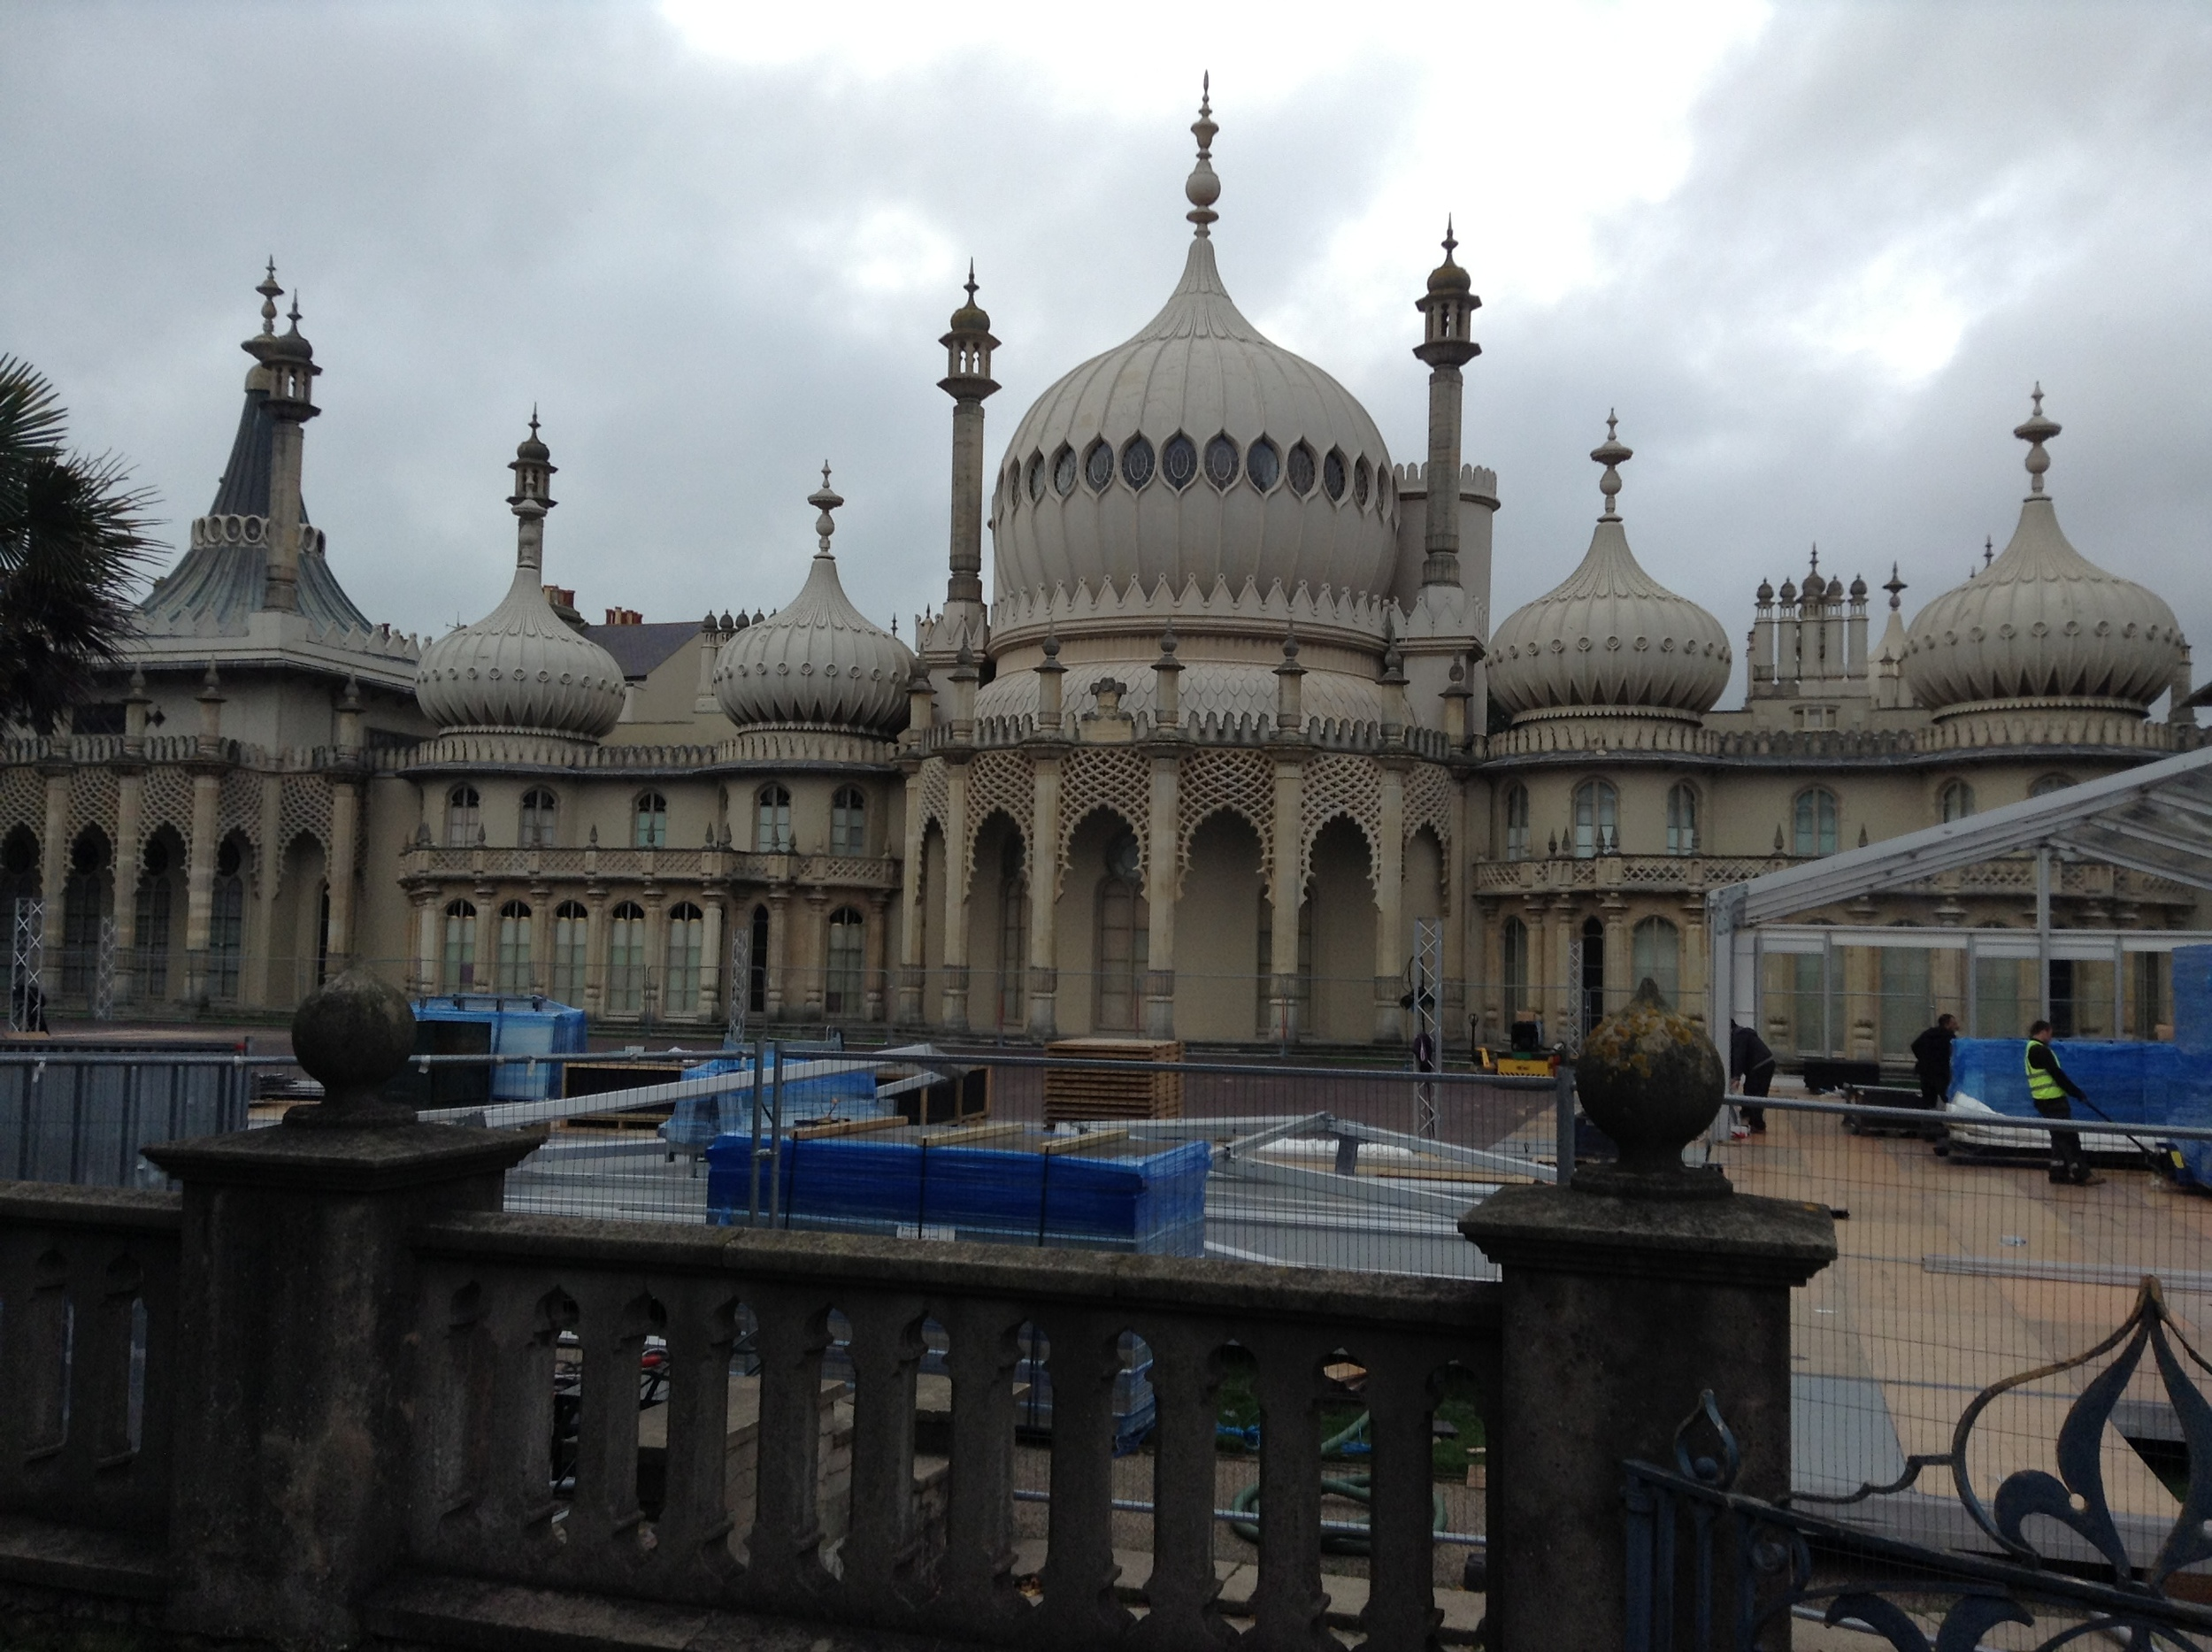 The Royal Pavilion (presently undergoing a facelift)